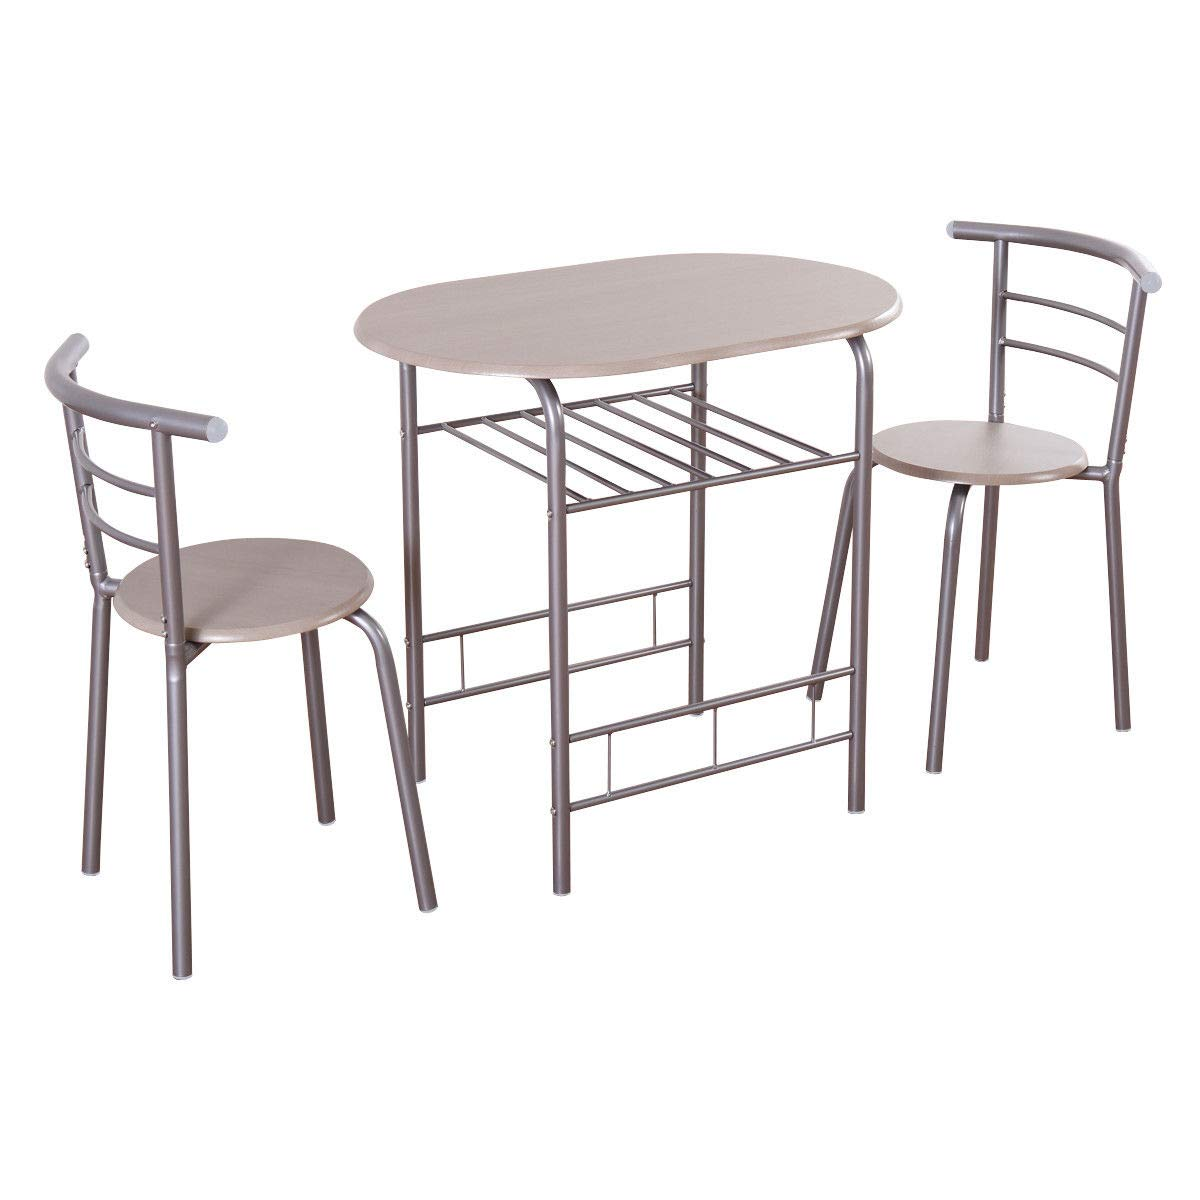 Giantex 3 Piece Dining Set Table 2 Chairs Bistro Pub Home Kitchen Breakfast Furniture